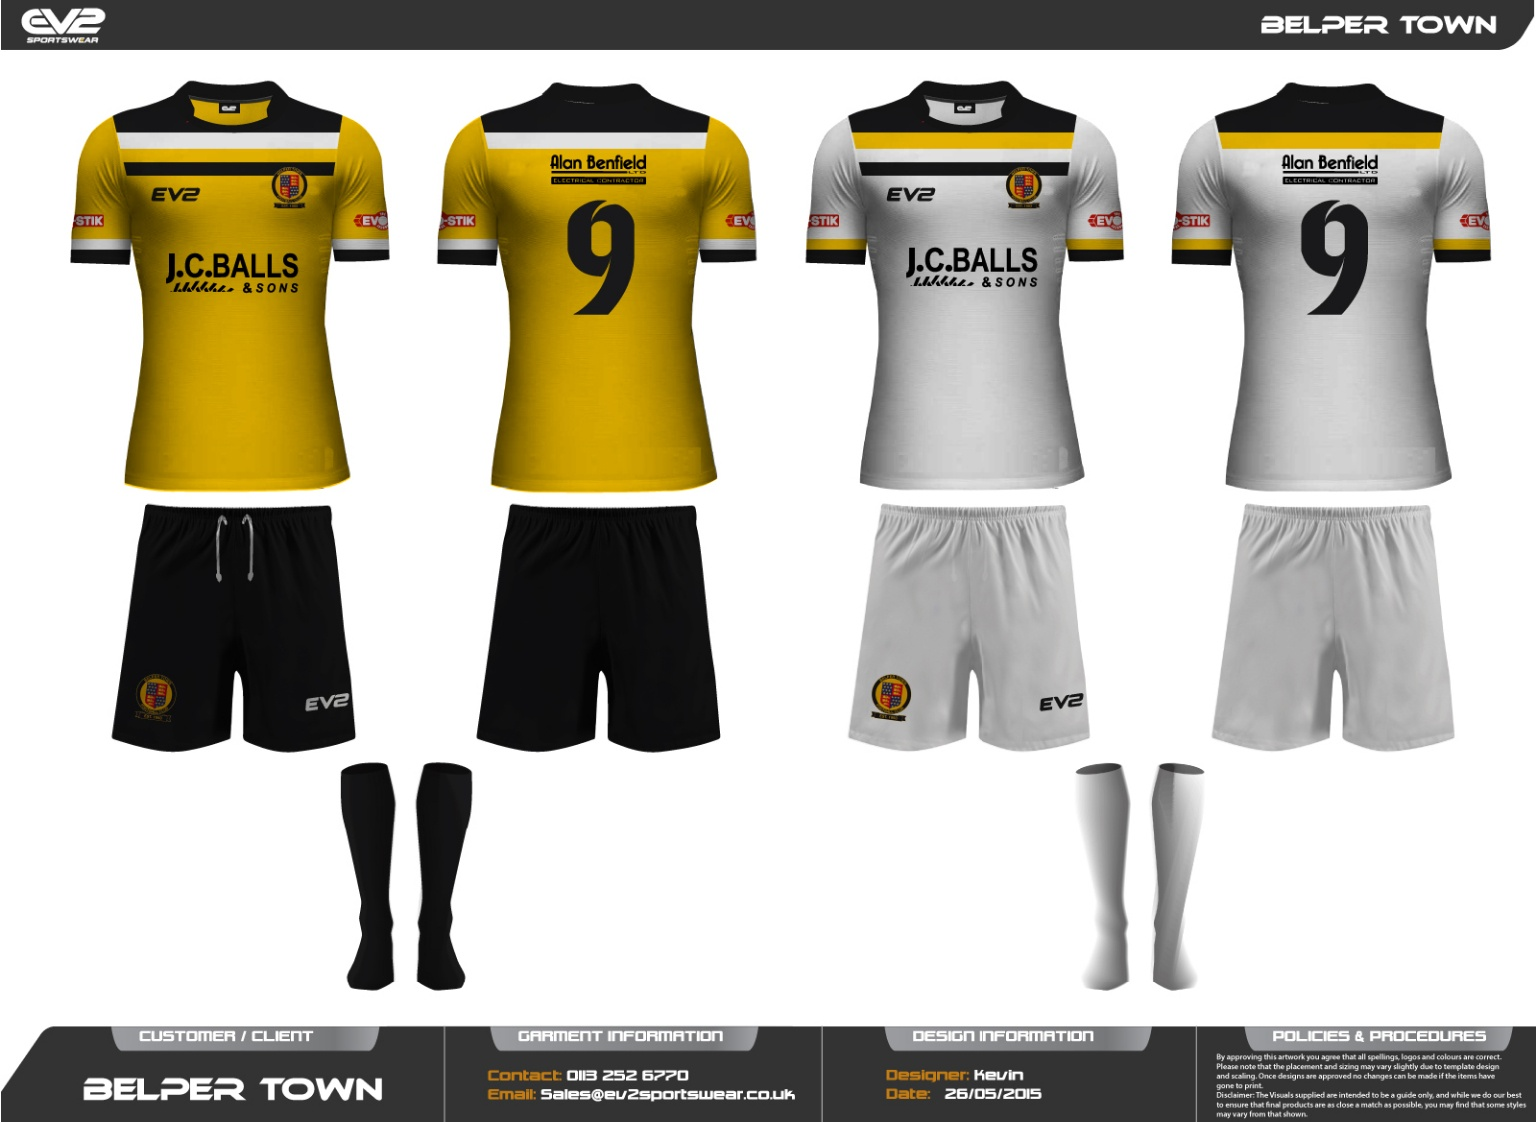 5a1e1e01 New playing kits unveiled - News - First Team - Belper Town FC